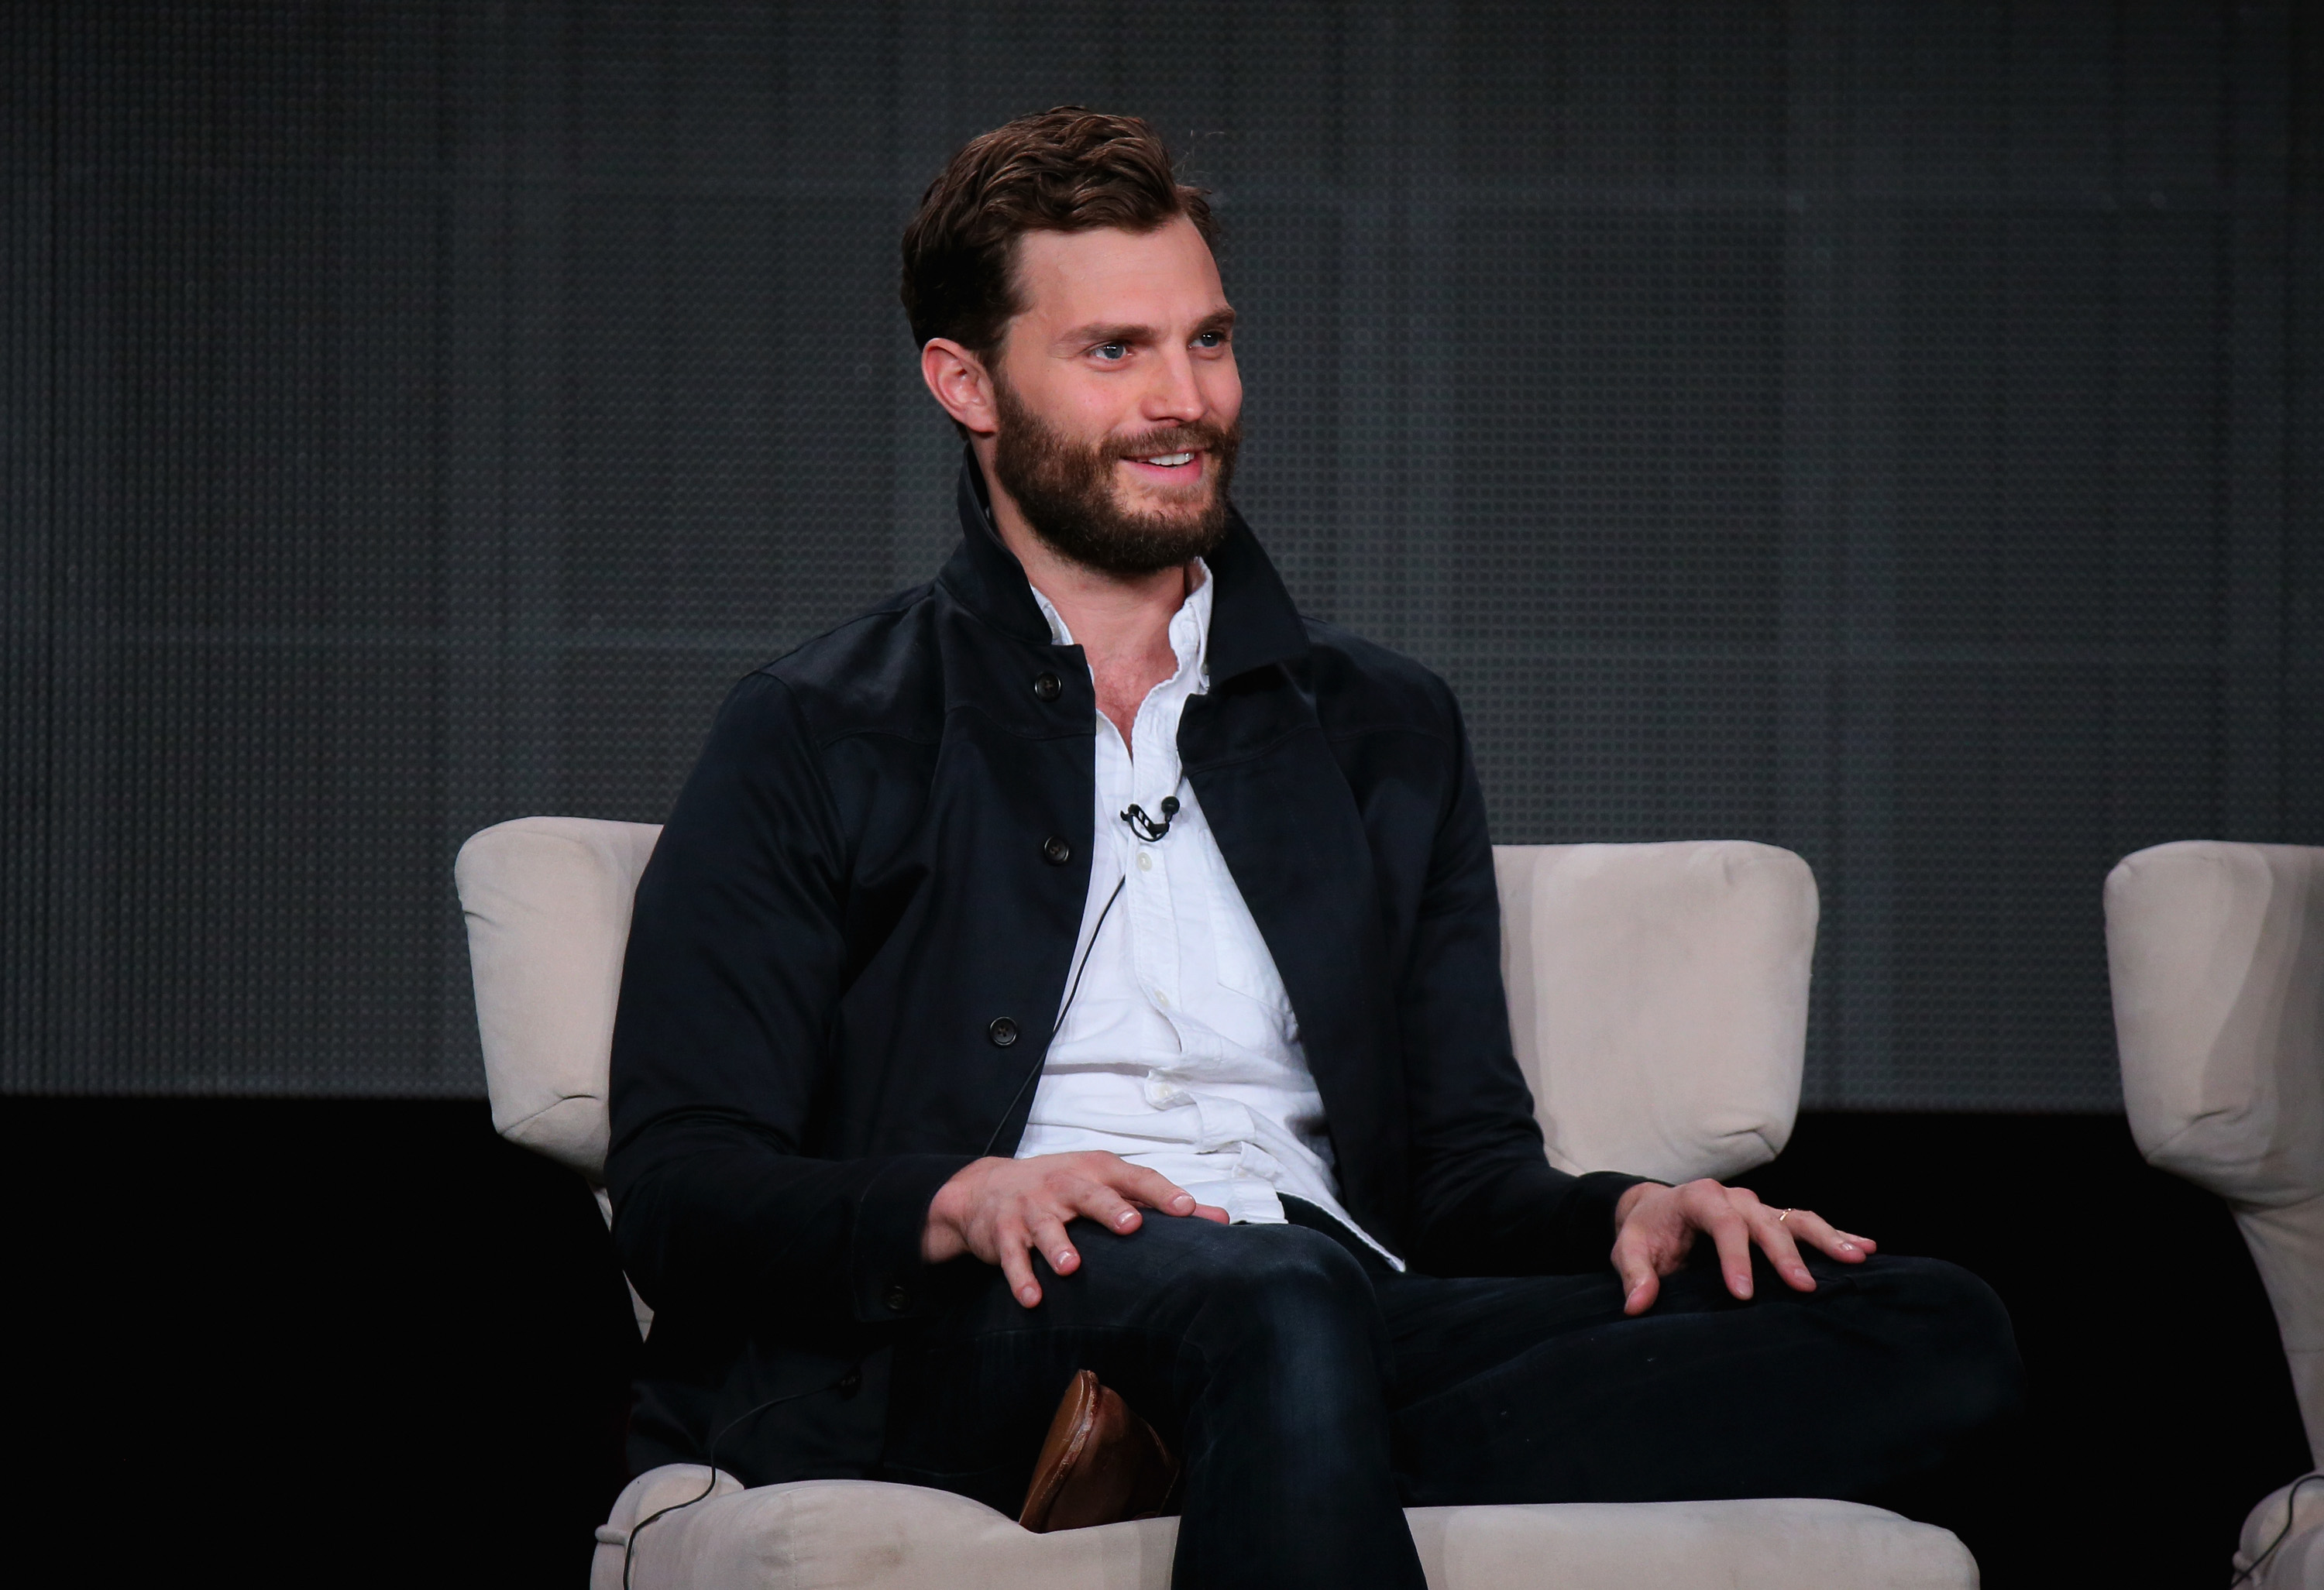 Jamie Dornan speaks onstage about The Fall during the Netflix TCA Press Tour